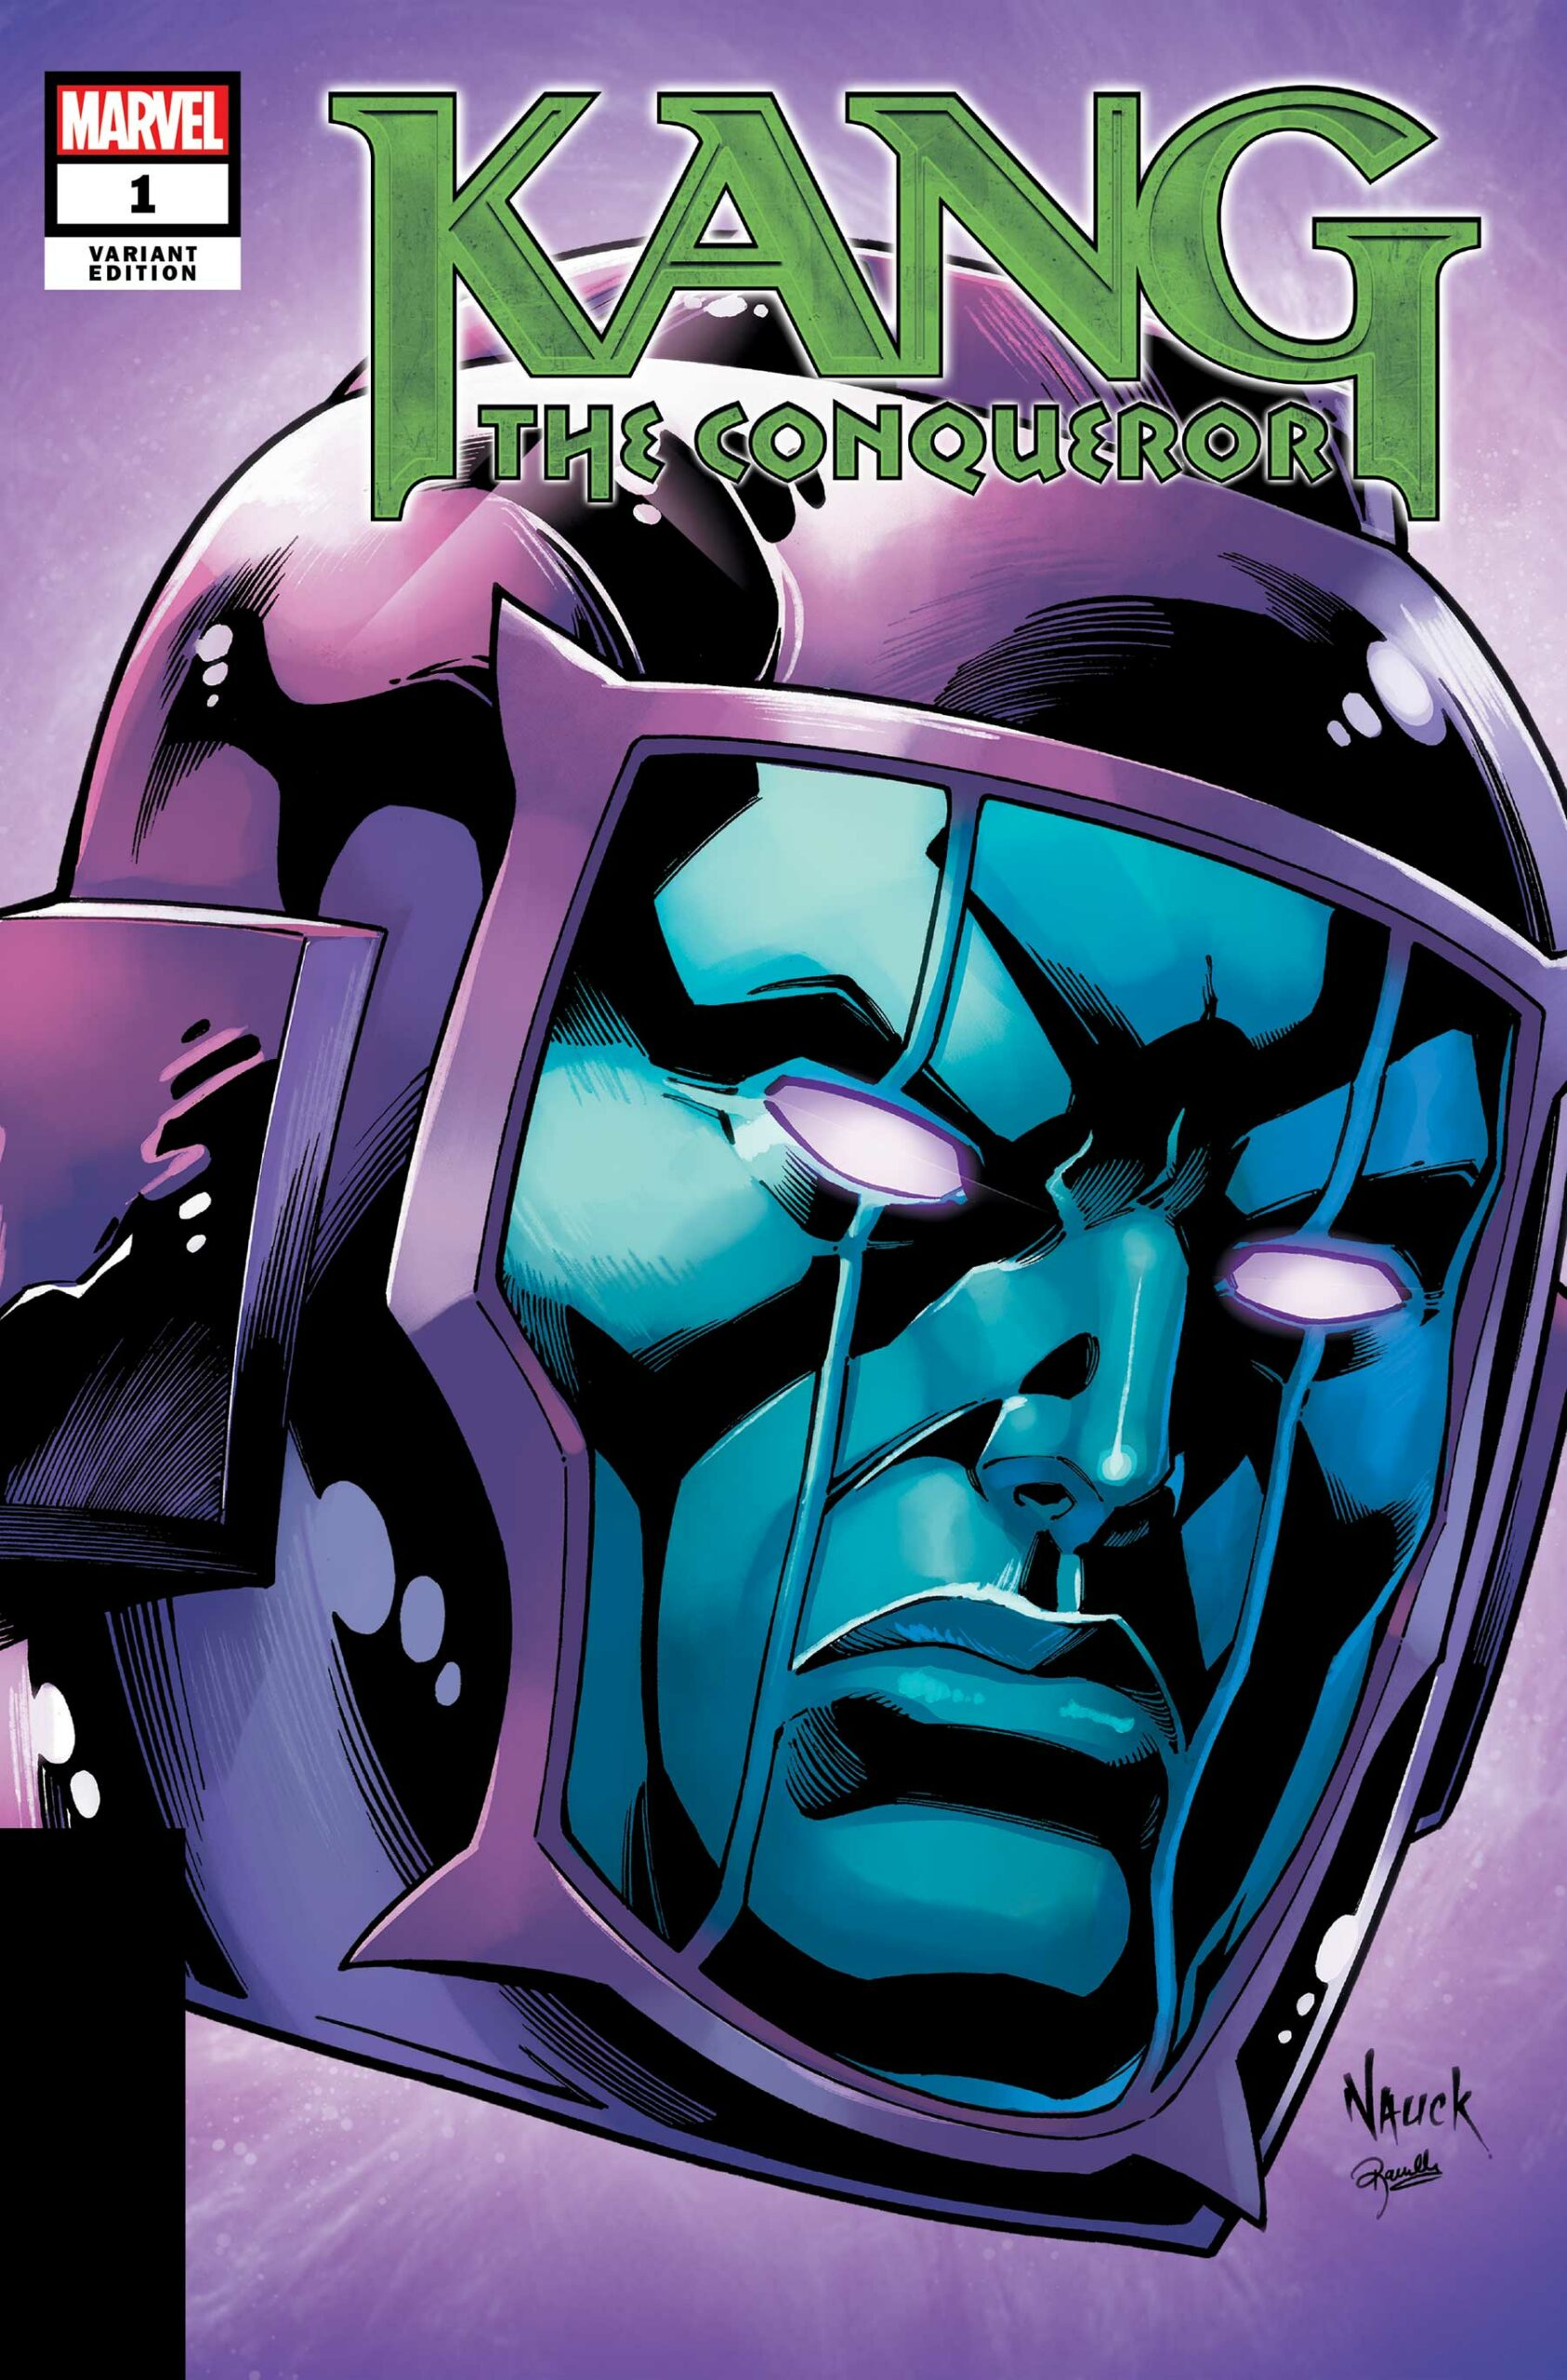 KANG THE CONQUEROR #1 - Nauck Variant Cover